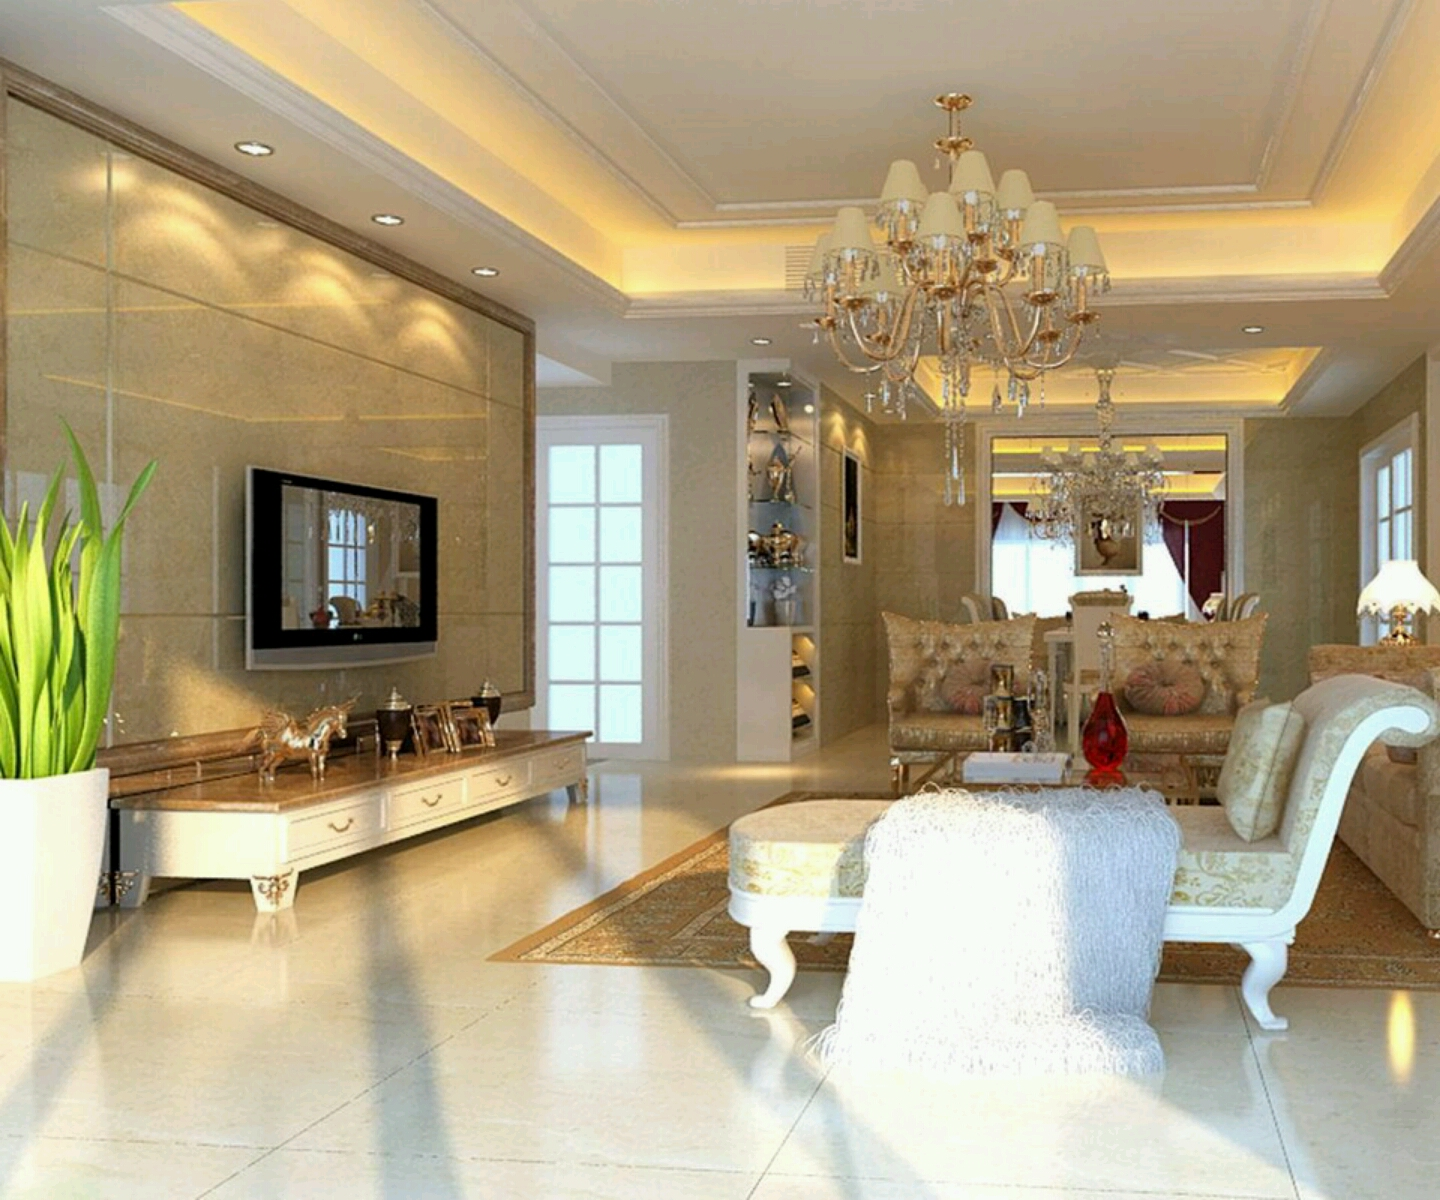 Inside Home Design Ideas: Home Decor 2012: Luxury Homes Interior Decoration Living